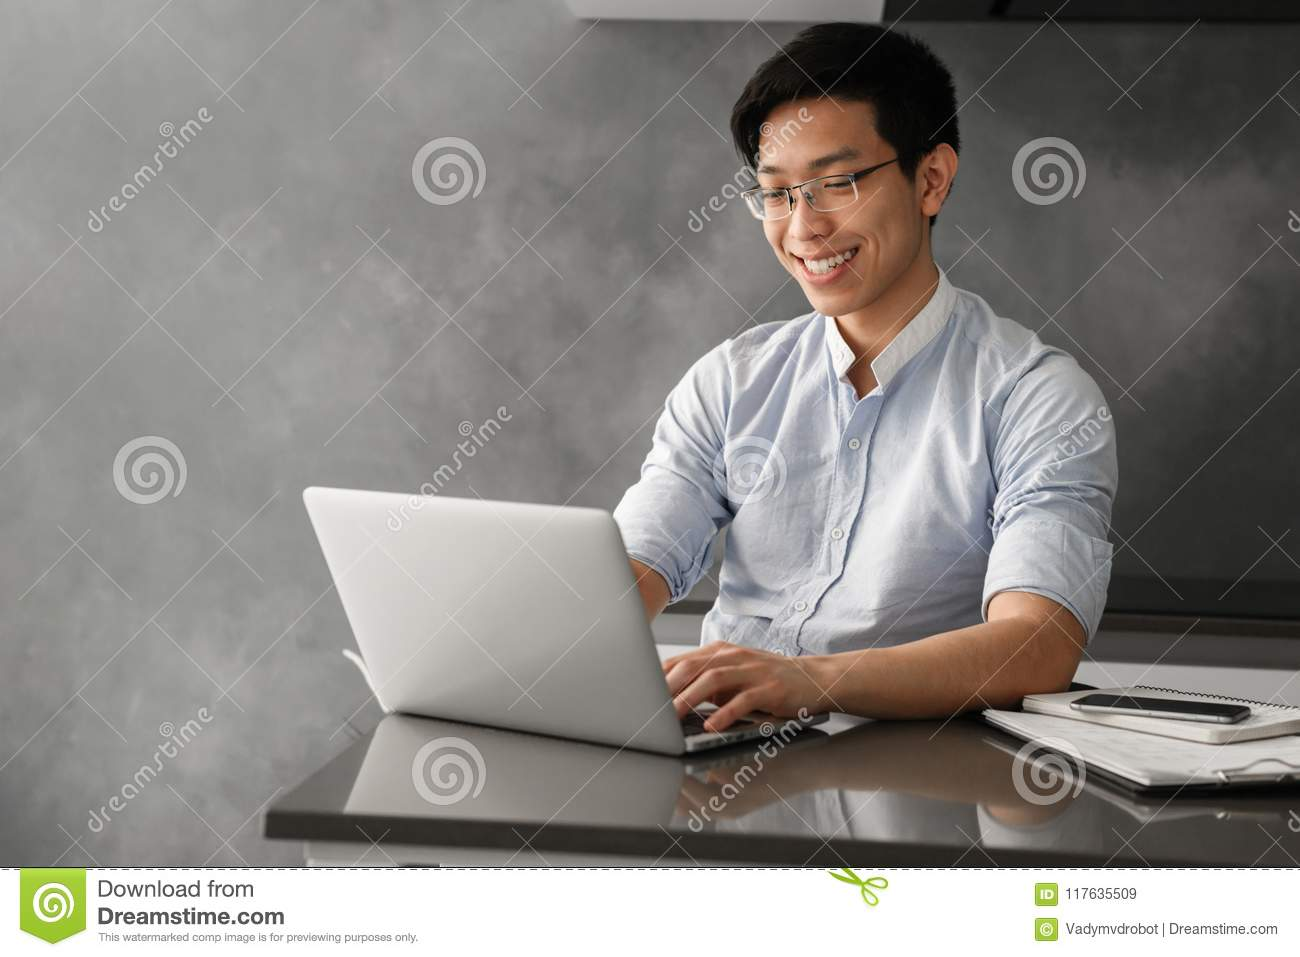 Portrait of a smiling young asian man working